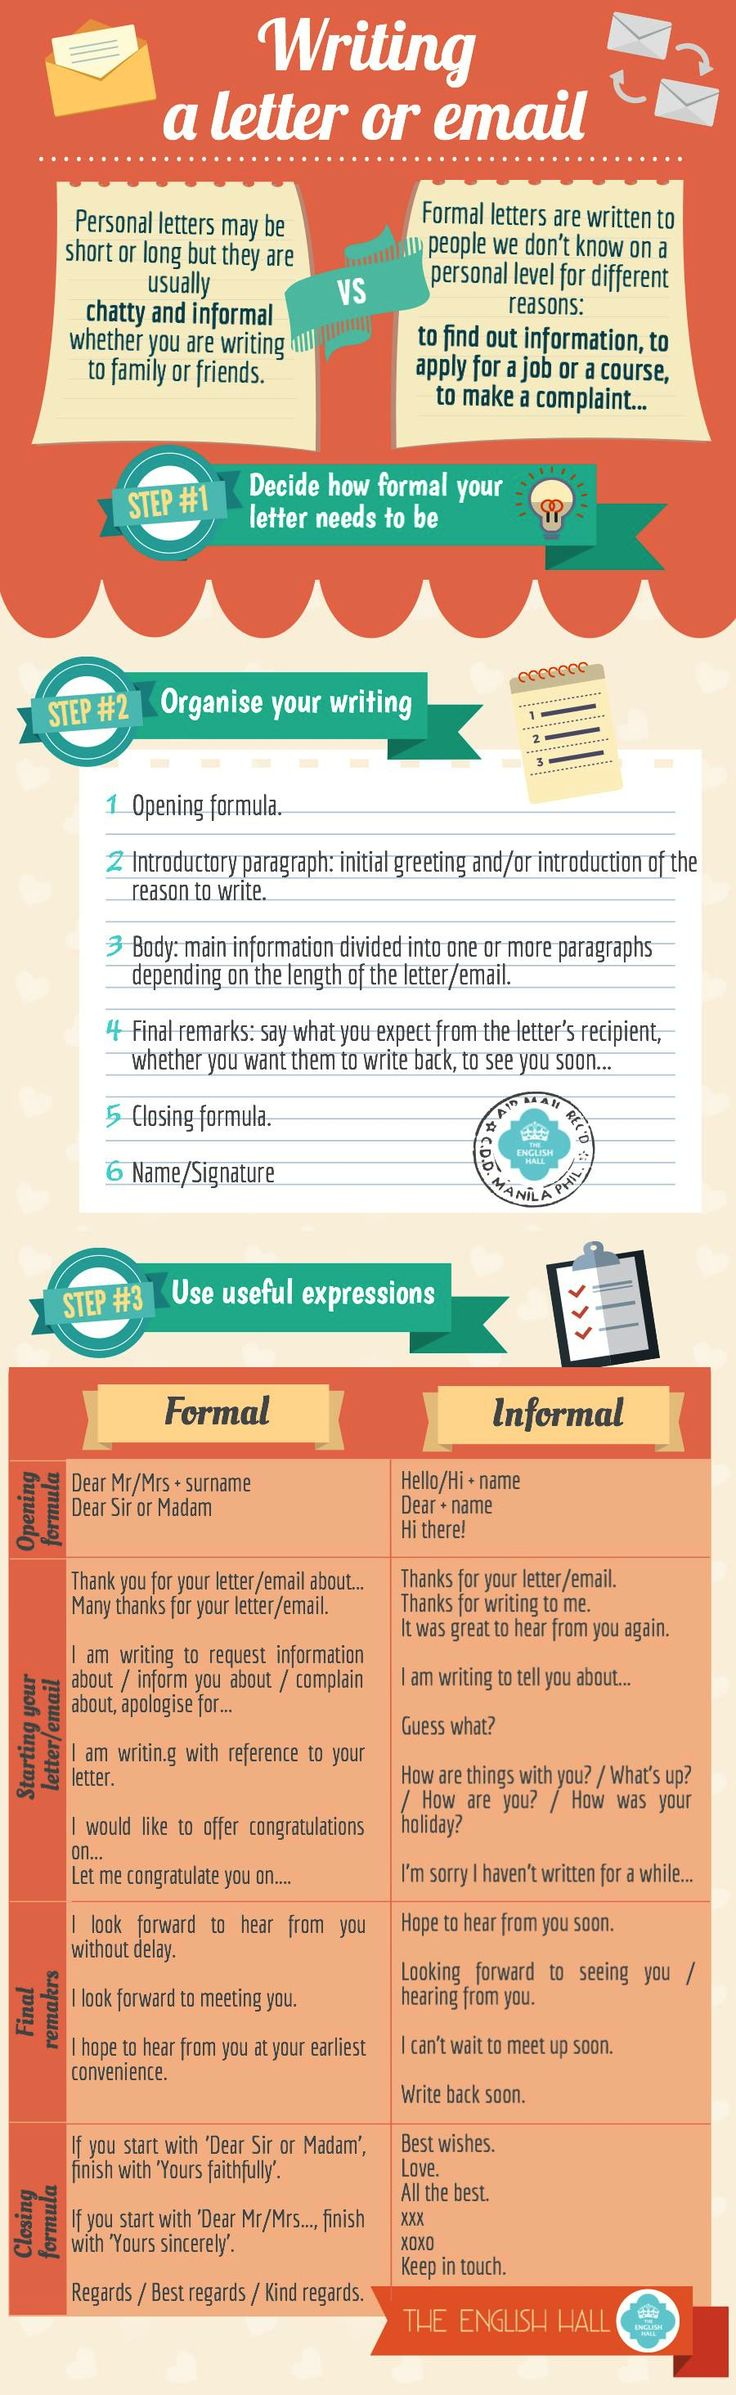 Writing a letter or email - formal vs informal                                                                                                                                                                                 More